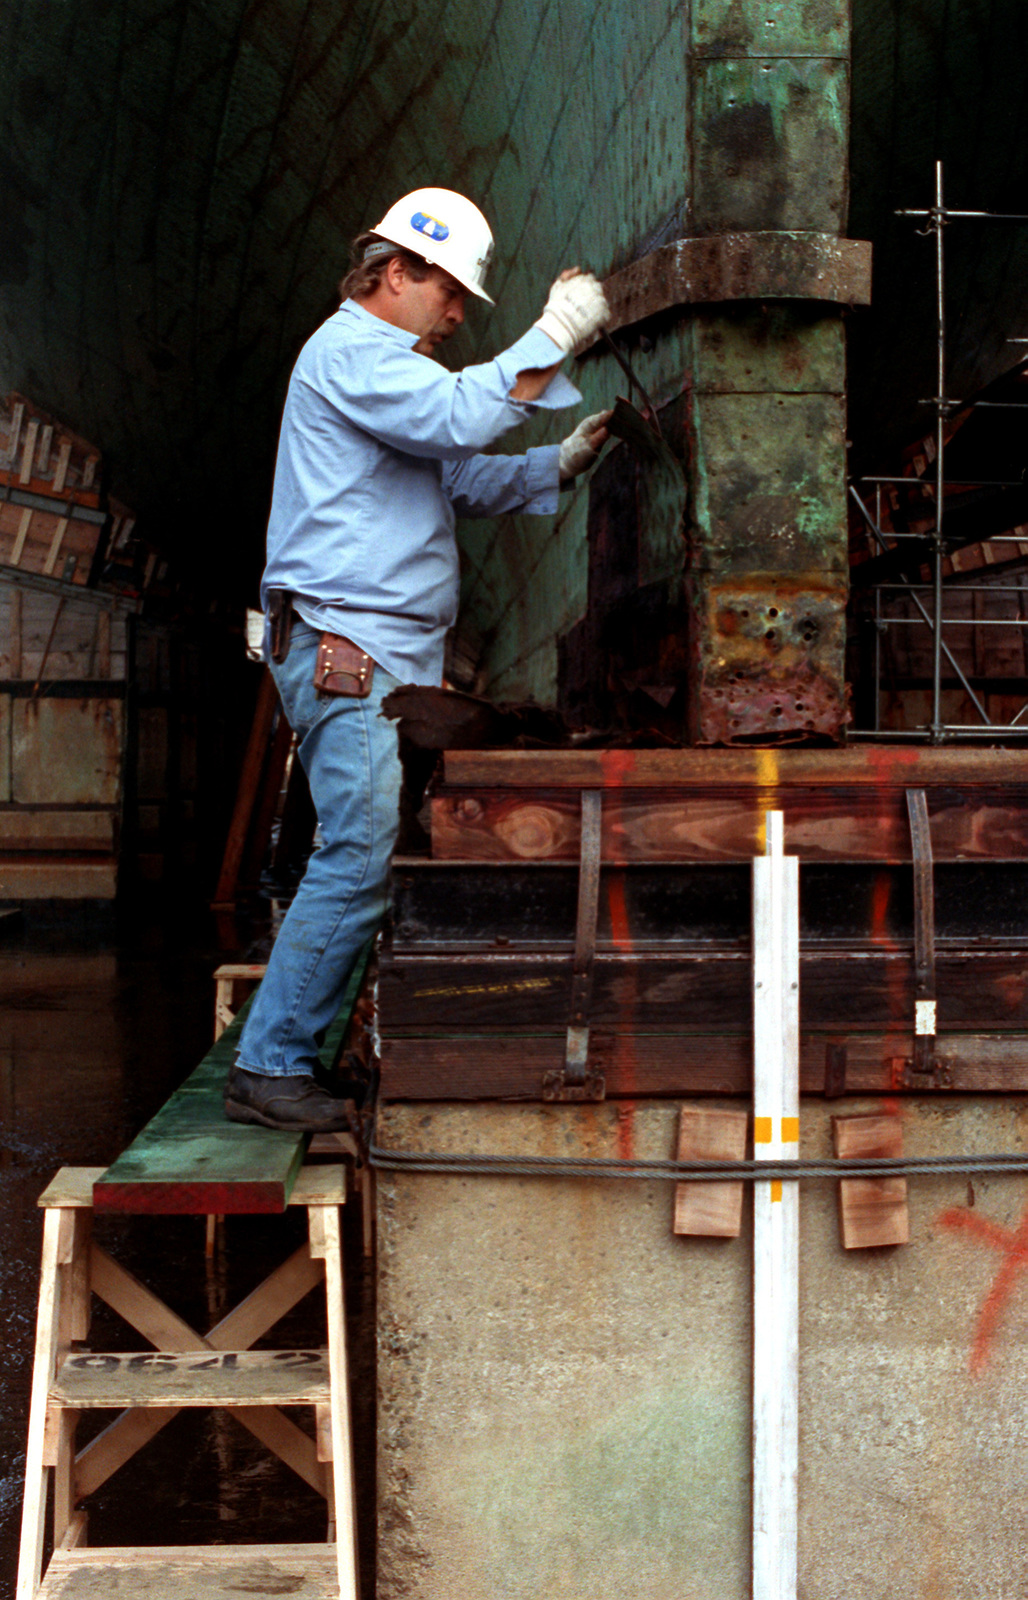 A worker removes some of the copper sheathing from the sternpost of the 44-gun sail frigate USS CONSTITUTION in a dry dock at the Charleston Memorial Shipyard. The ship is being prepared for its bicentennial celebration in 1997-1998. The CONSTITUTION was launched on October 21, 1797, and is the oldest ship remaining on the Navy List. The ship's rudder has been removed